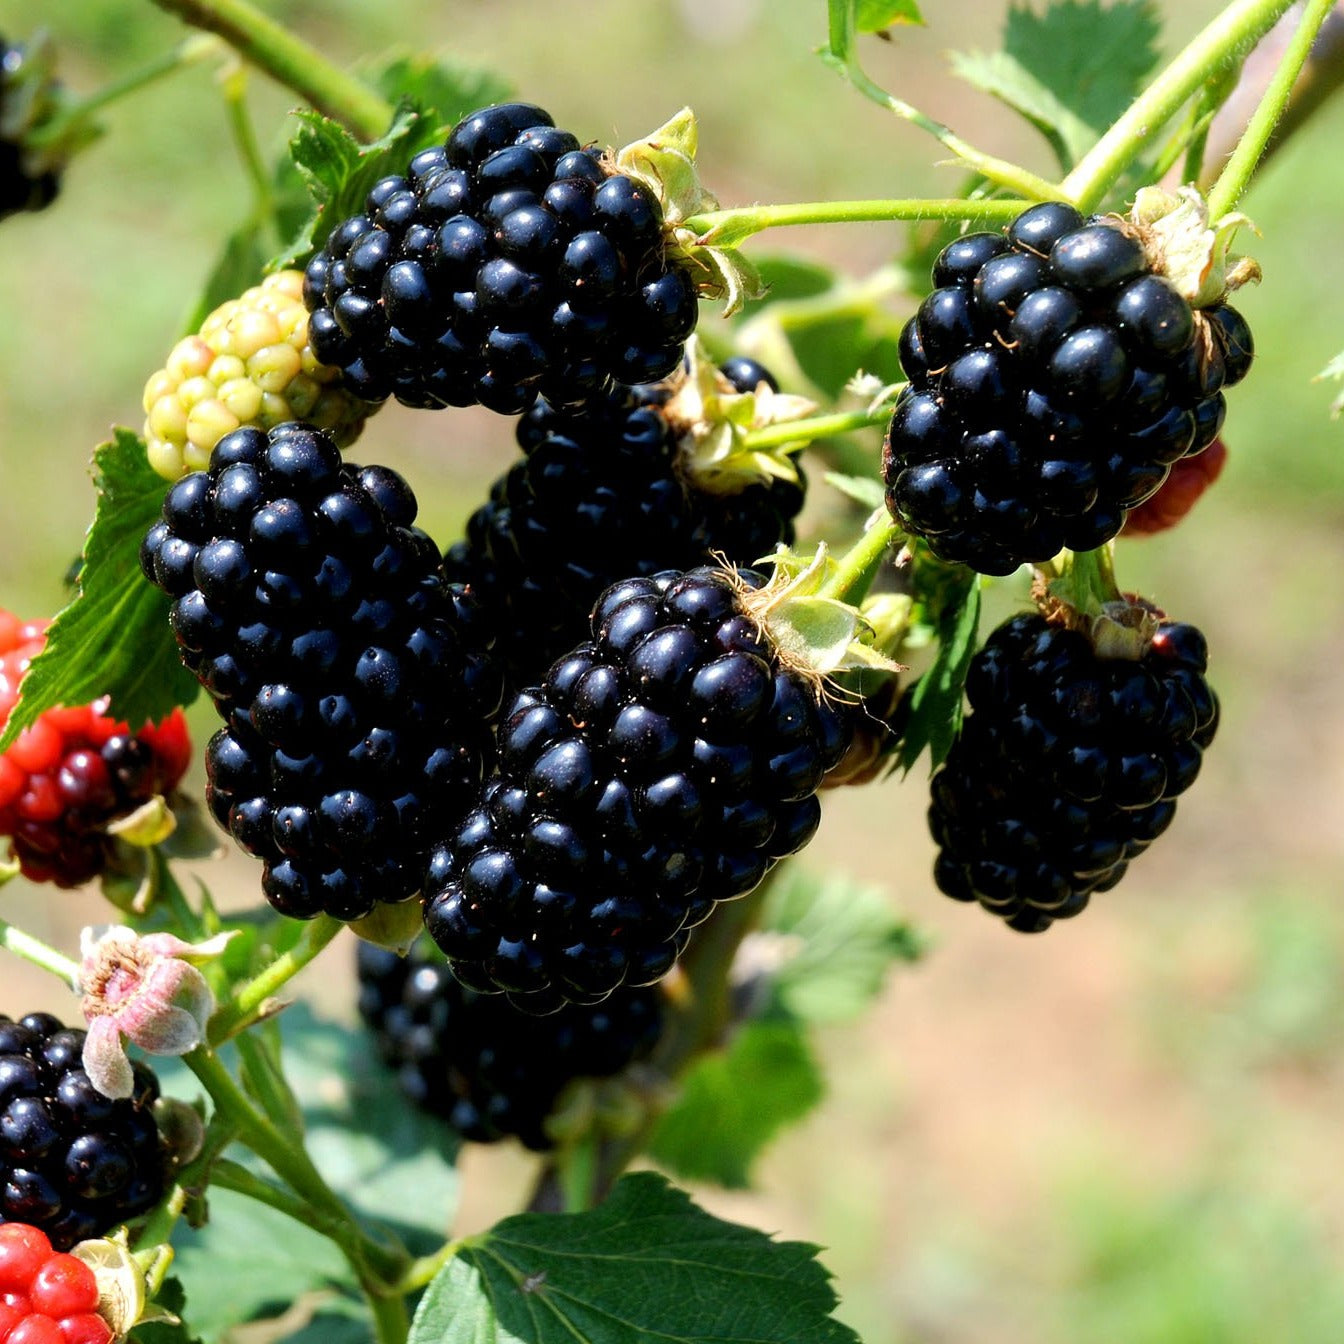 NAVAHO Blackberry, Thornless, Upright Produces Huge Tasty Berries in Large Clusters